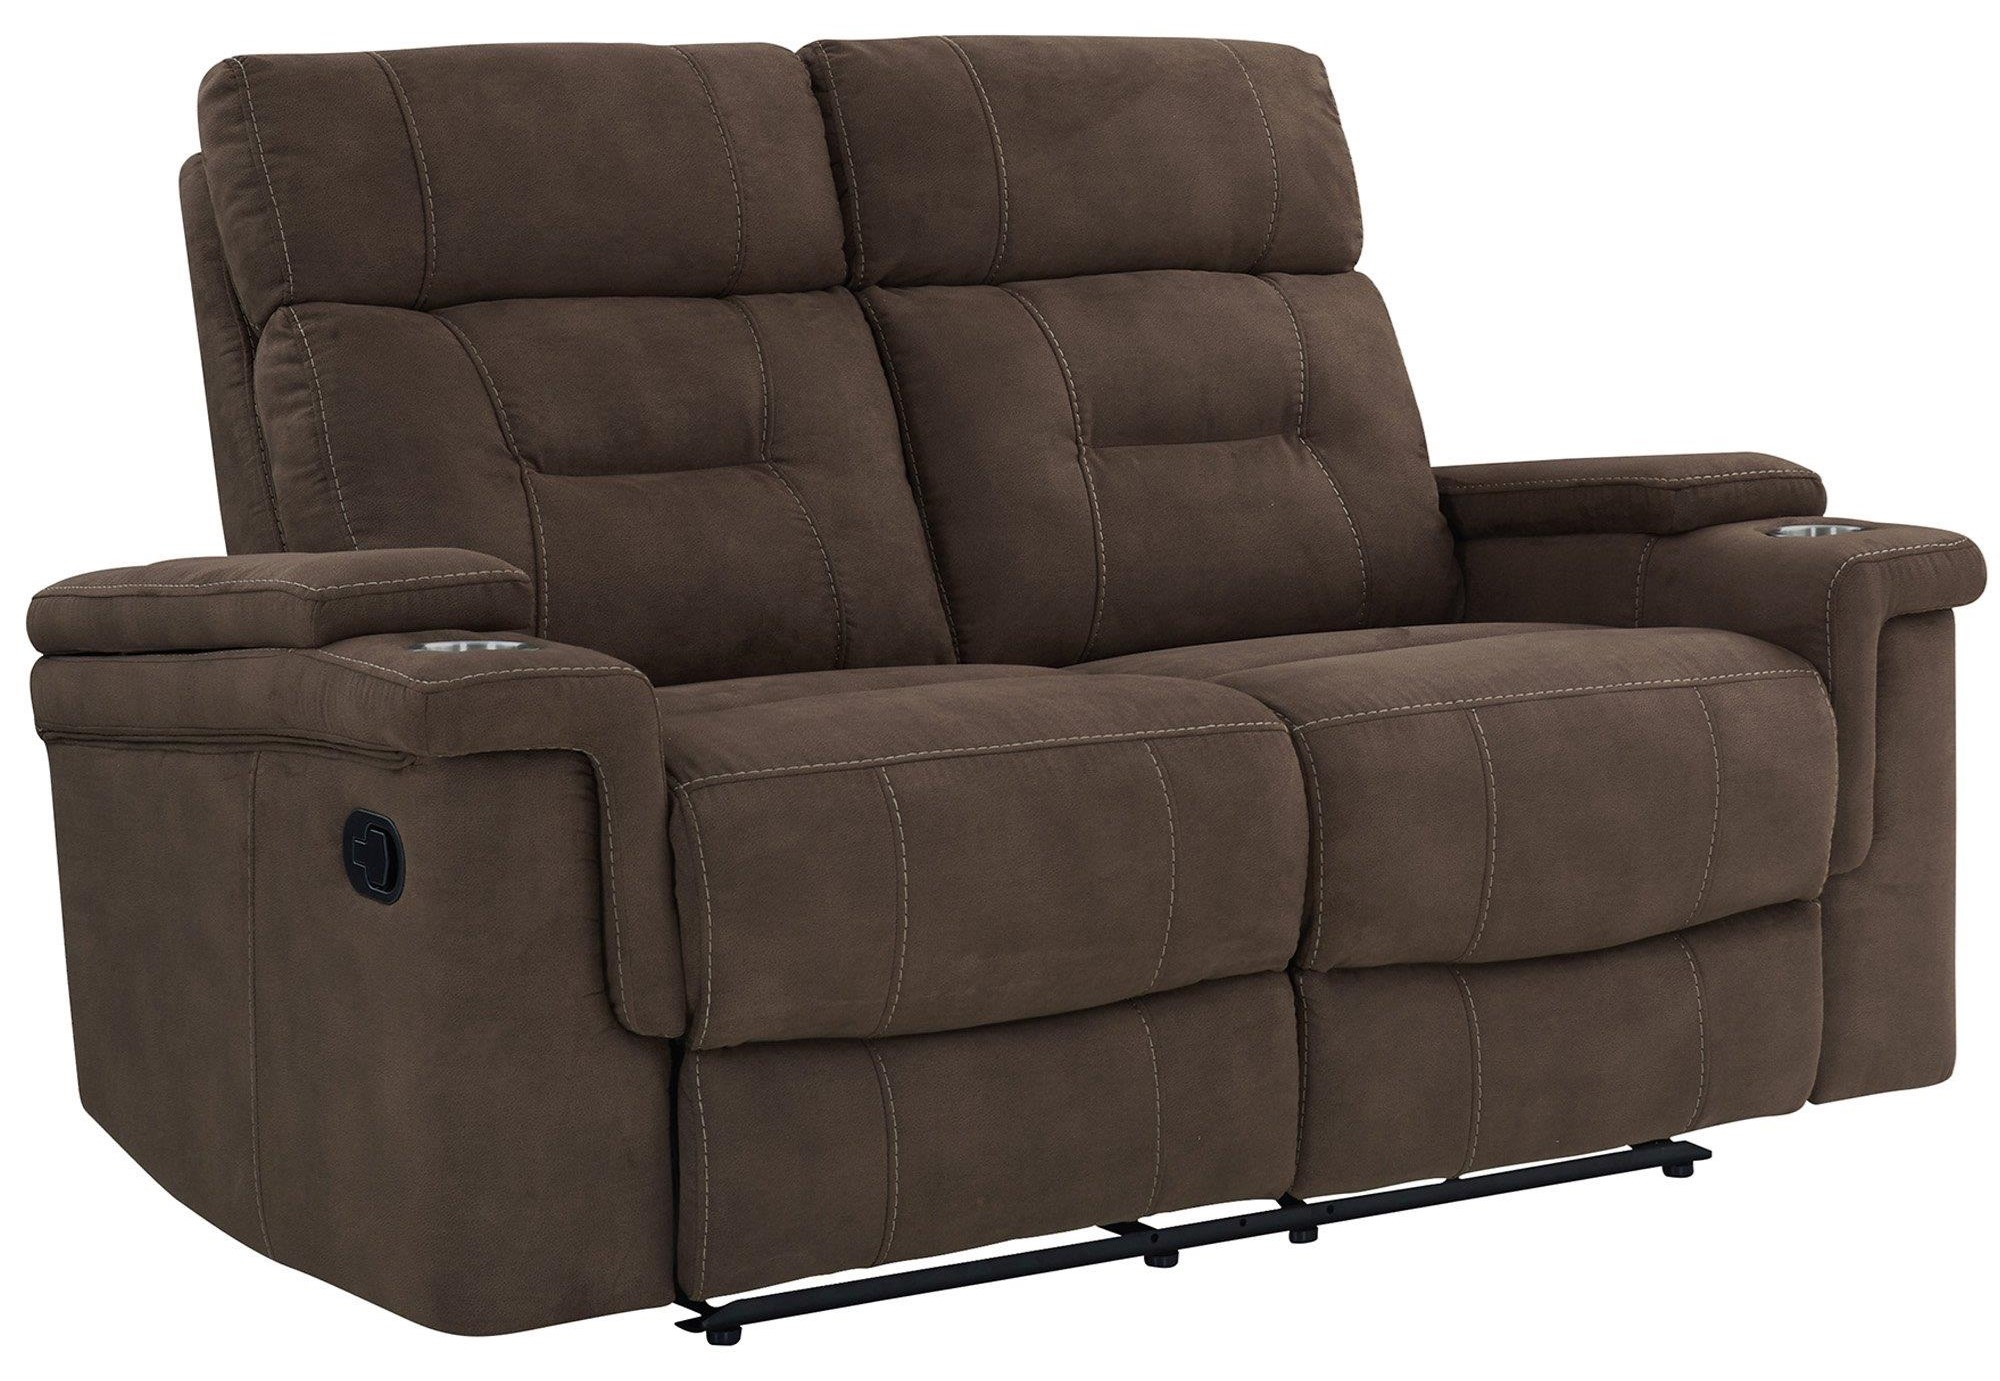 Diesel Reclining Loveseat by Parker House at Johnny Janosik